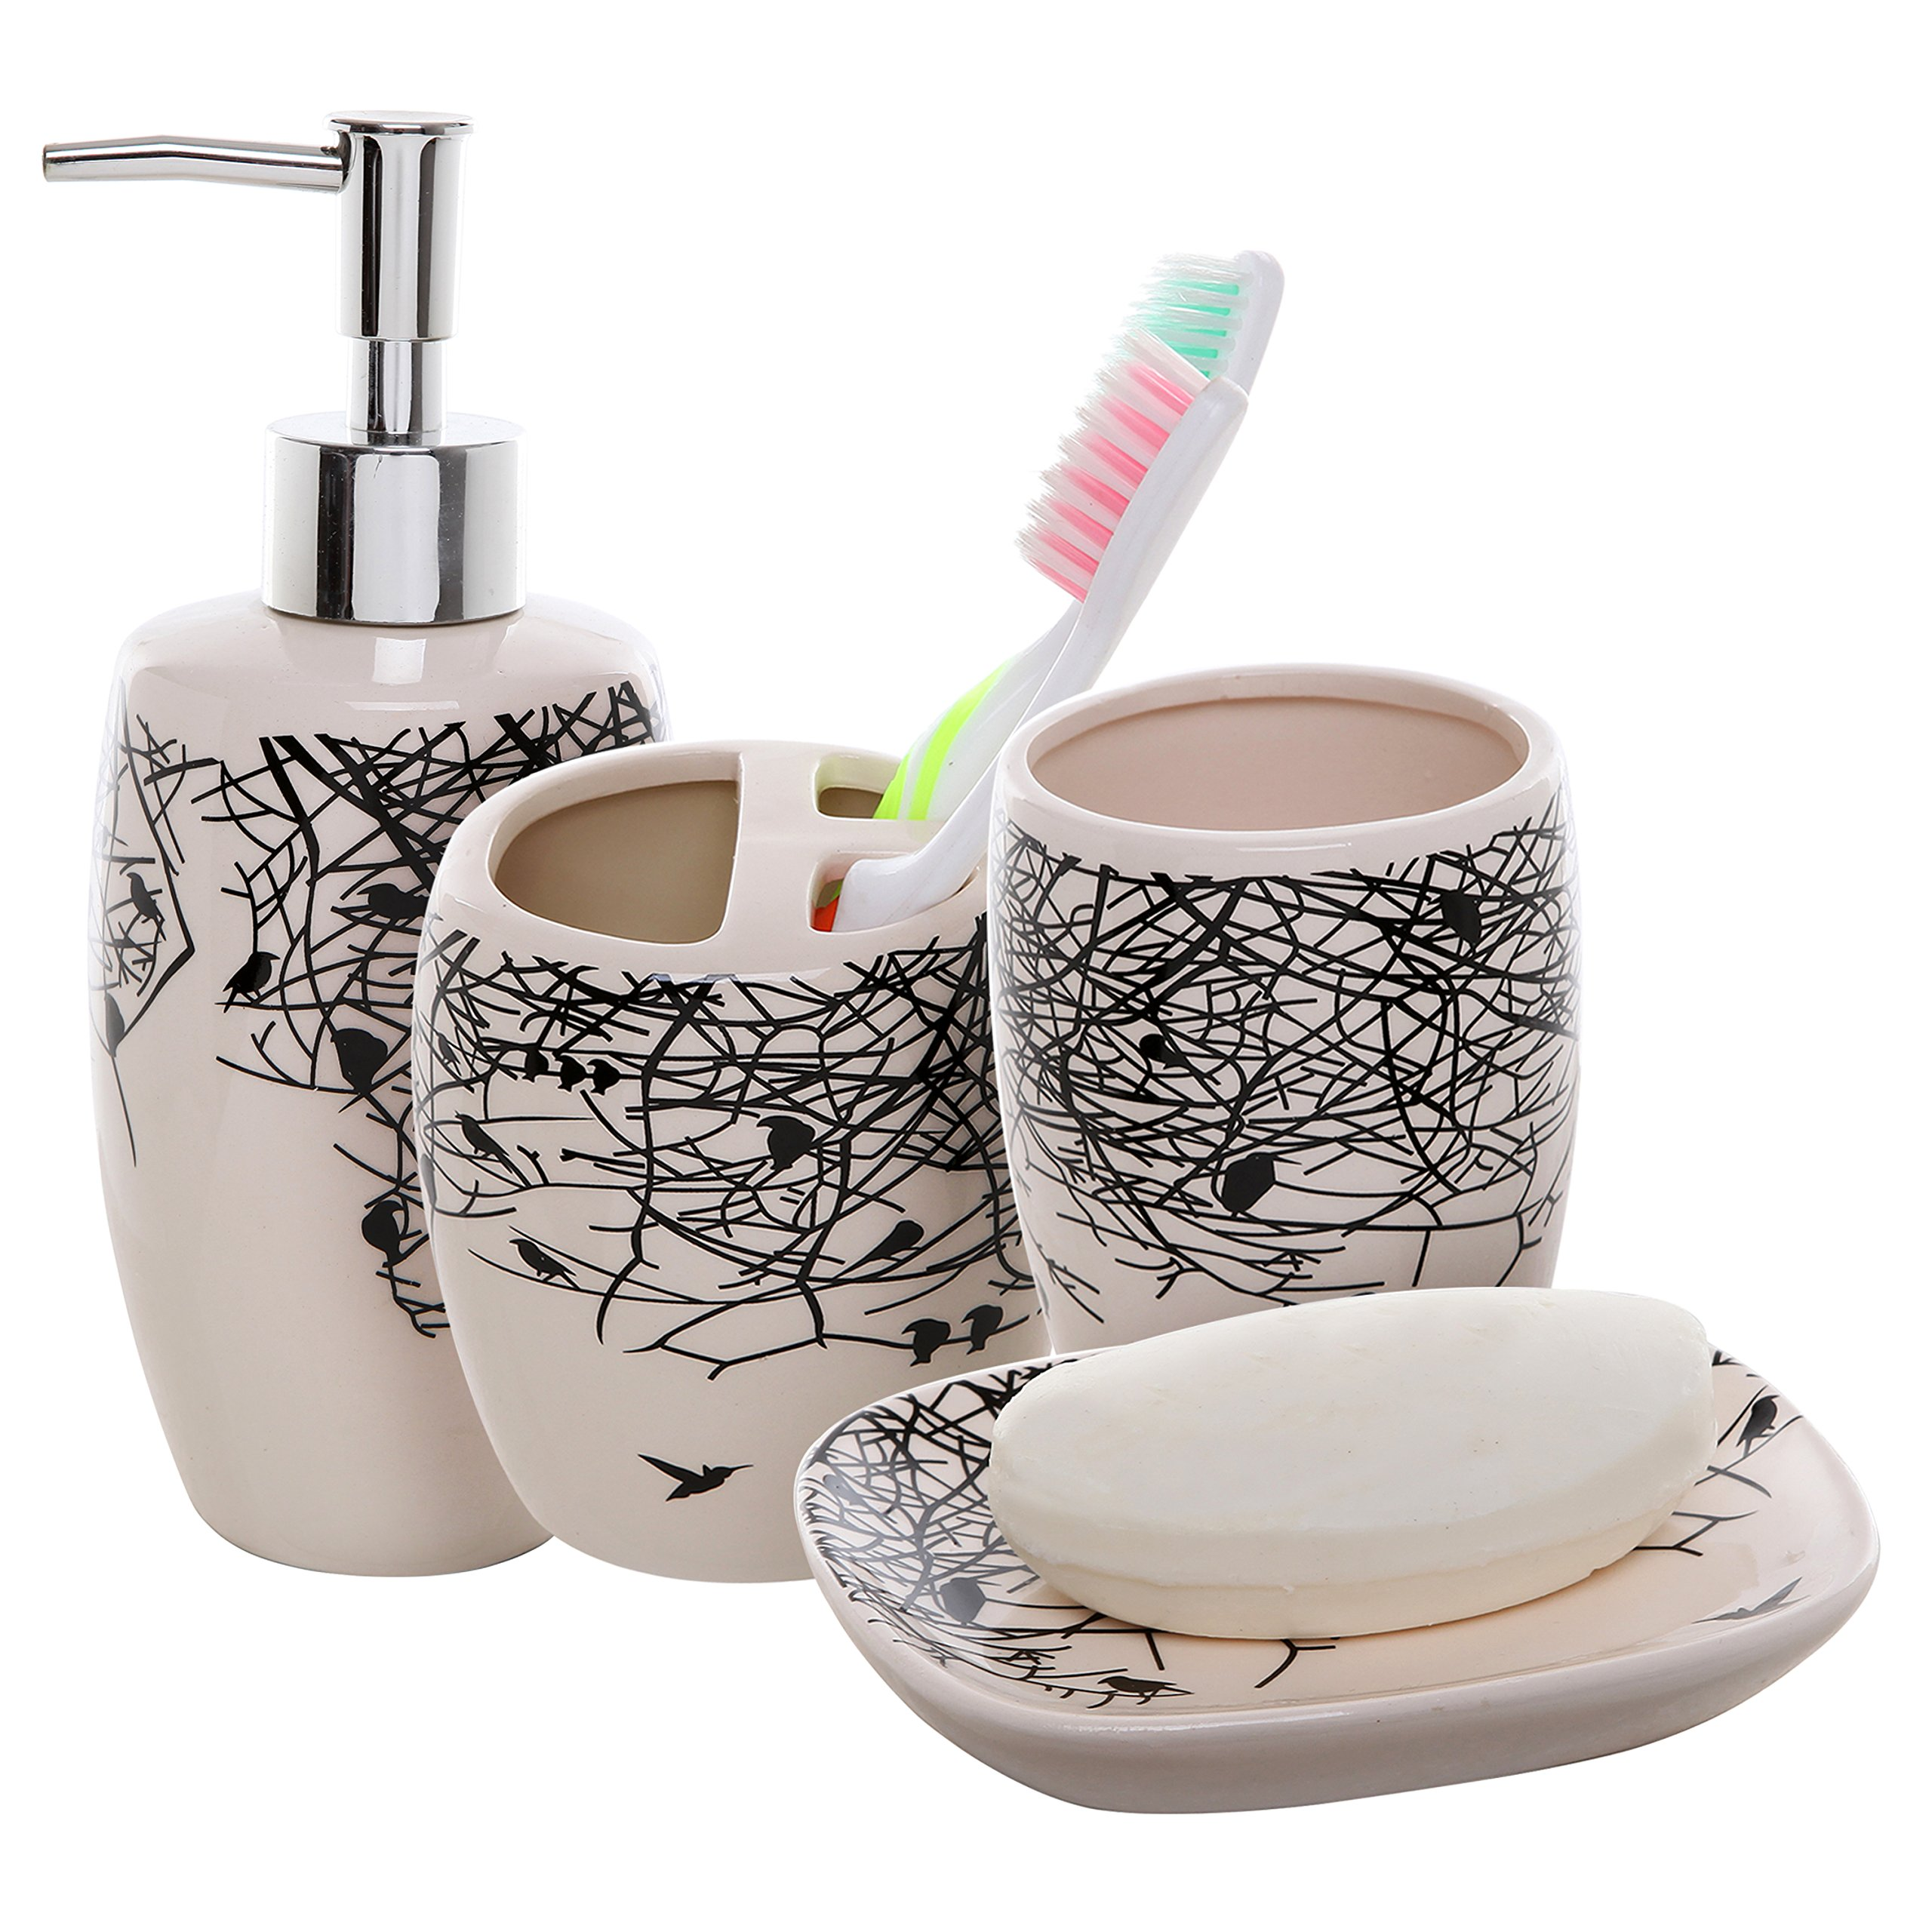 4 piece beige ceramic bathroom accessories set for Ceramic bathroom accessories sets